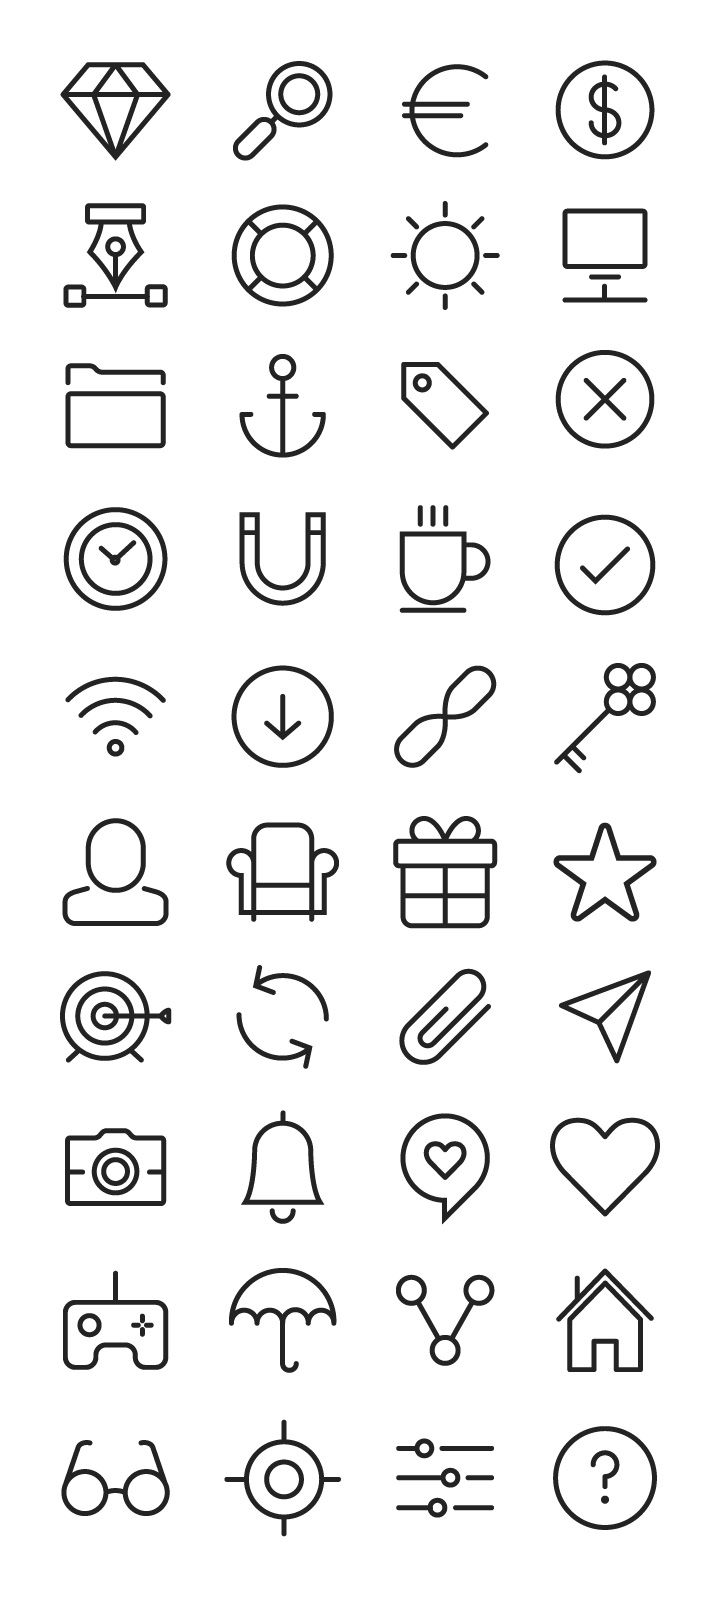 Today we want to share with our readers a free sample pack including 40 icons from Sympletts, a premium icon pack including 300+ elegant & m...